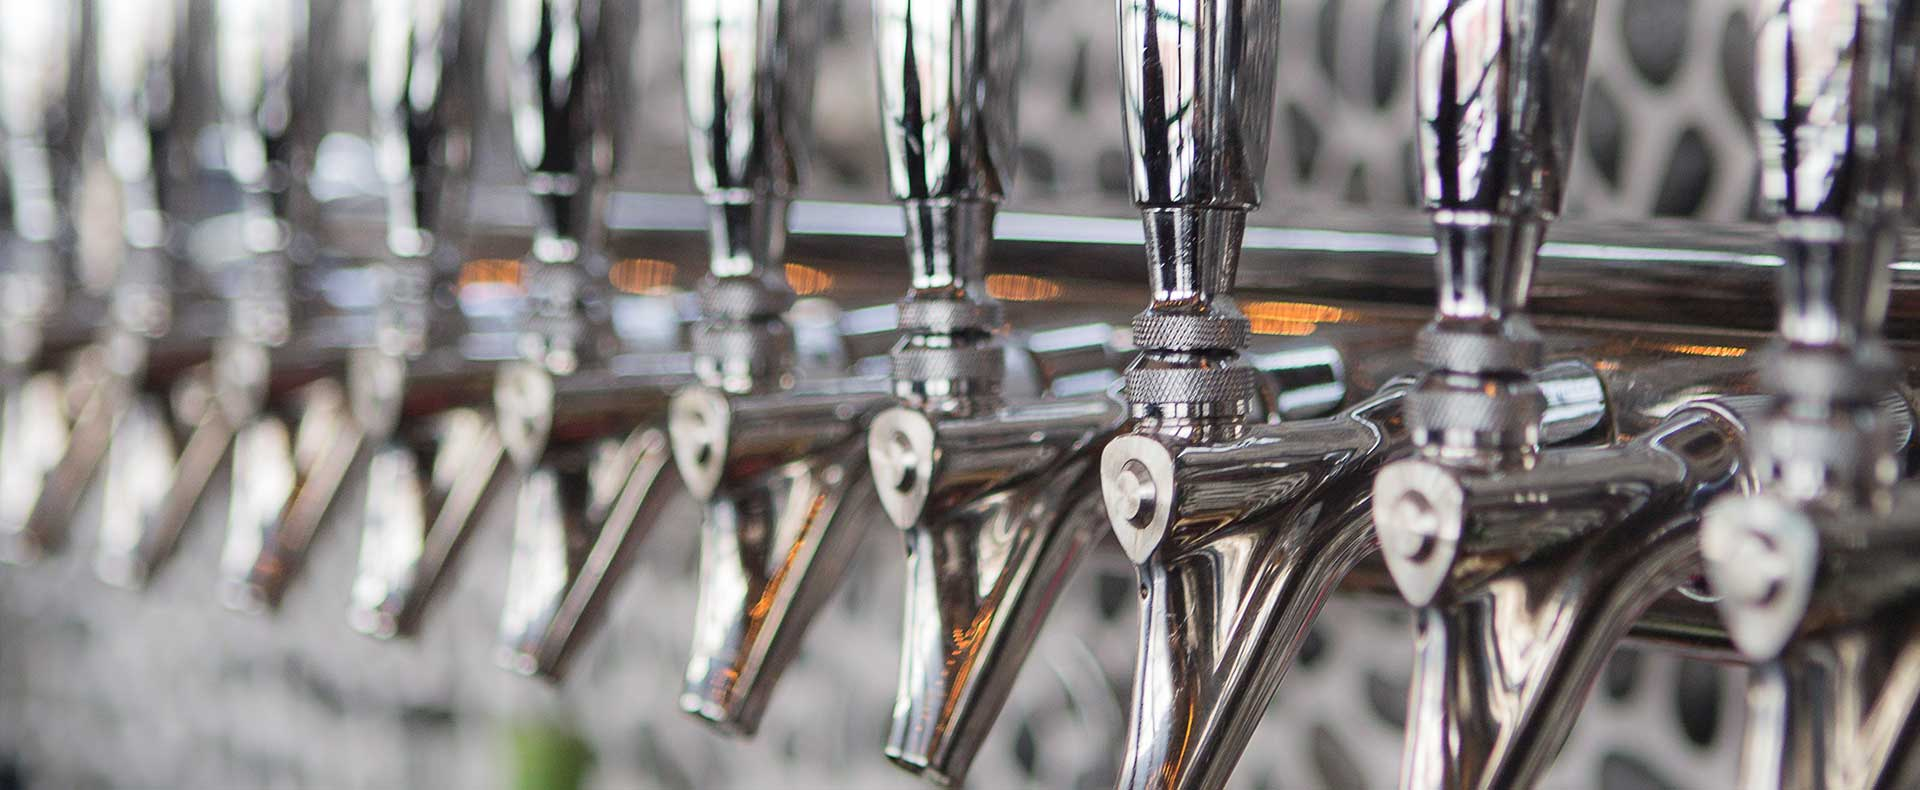 Draft Beer Equipment, Taps, Kegerators | Micro Matic USA